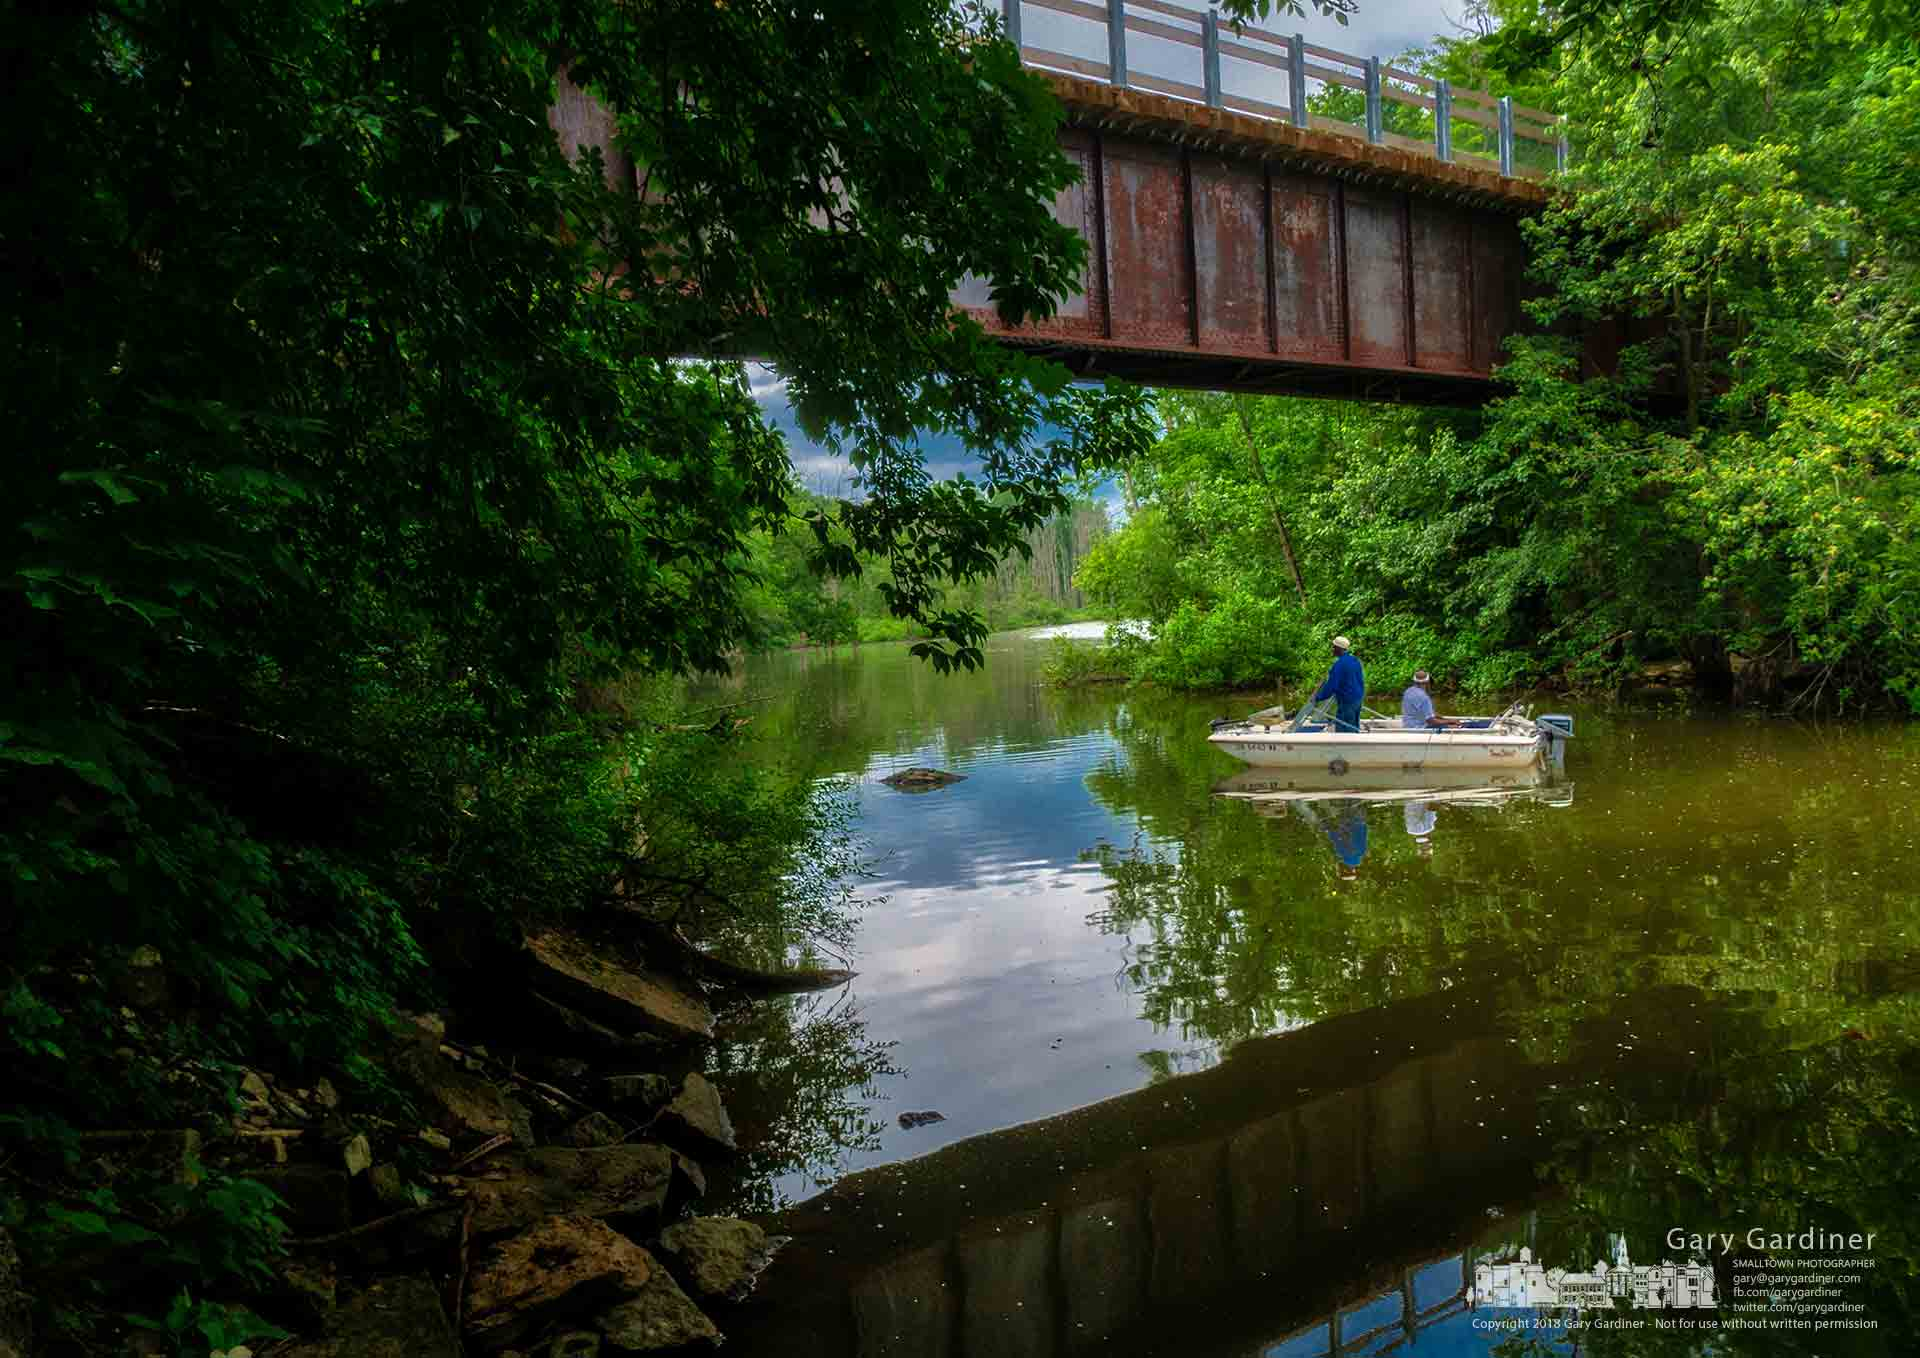 A pair of fisherman tries their luck fishing Big Walnut Creek beneath the bridge spanning what used to be a railroad overpass in Galena. My Final Photo for June 10, 2018.